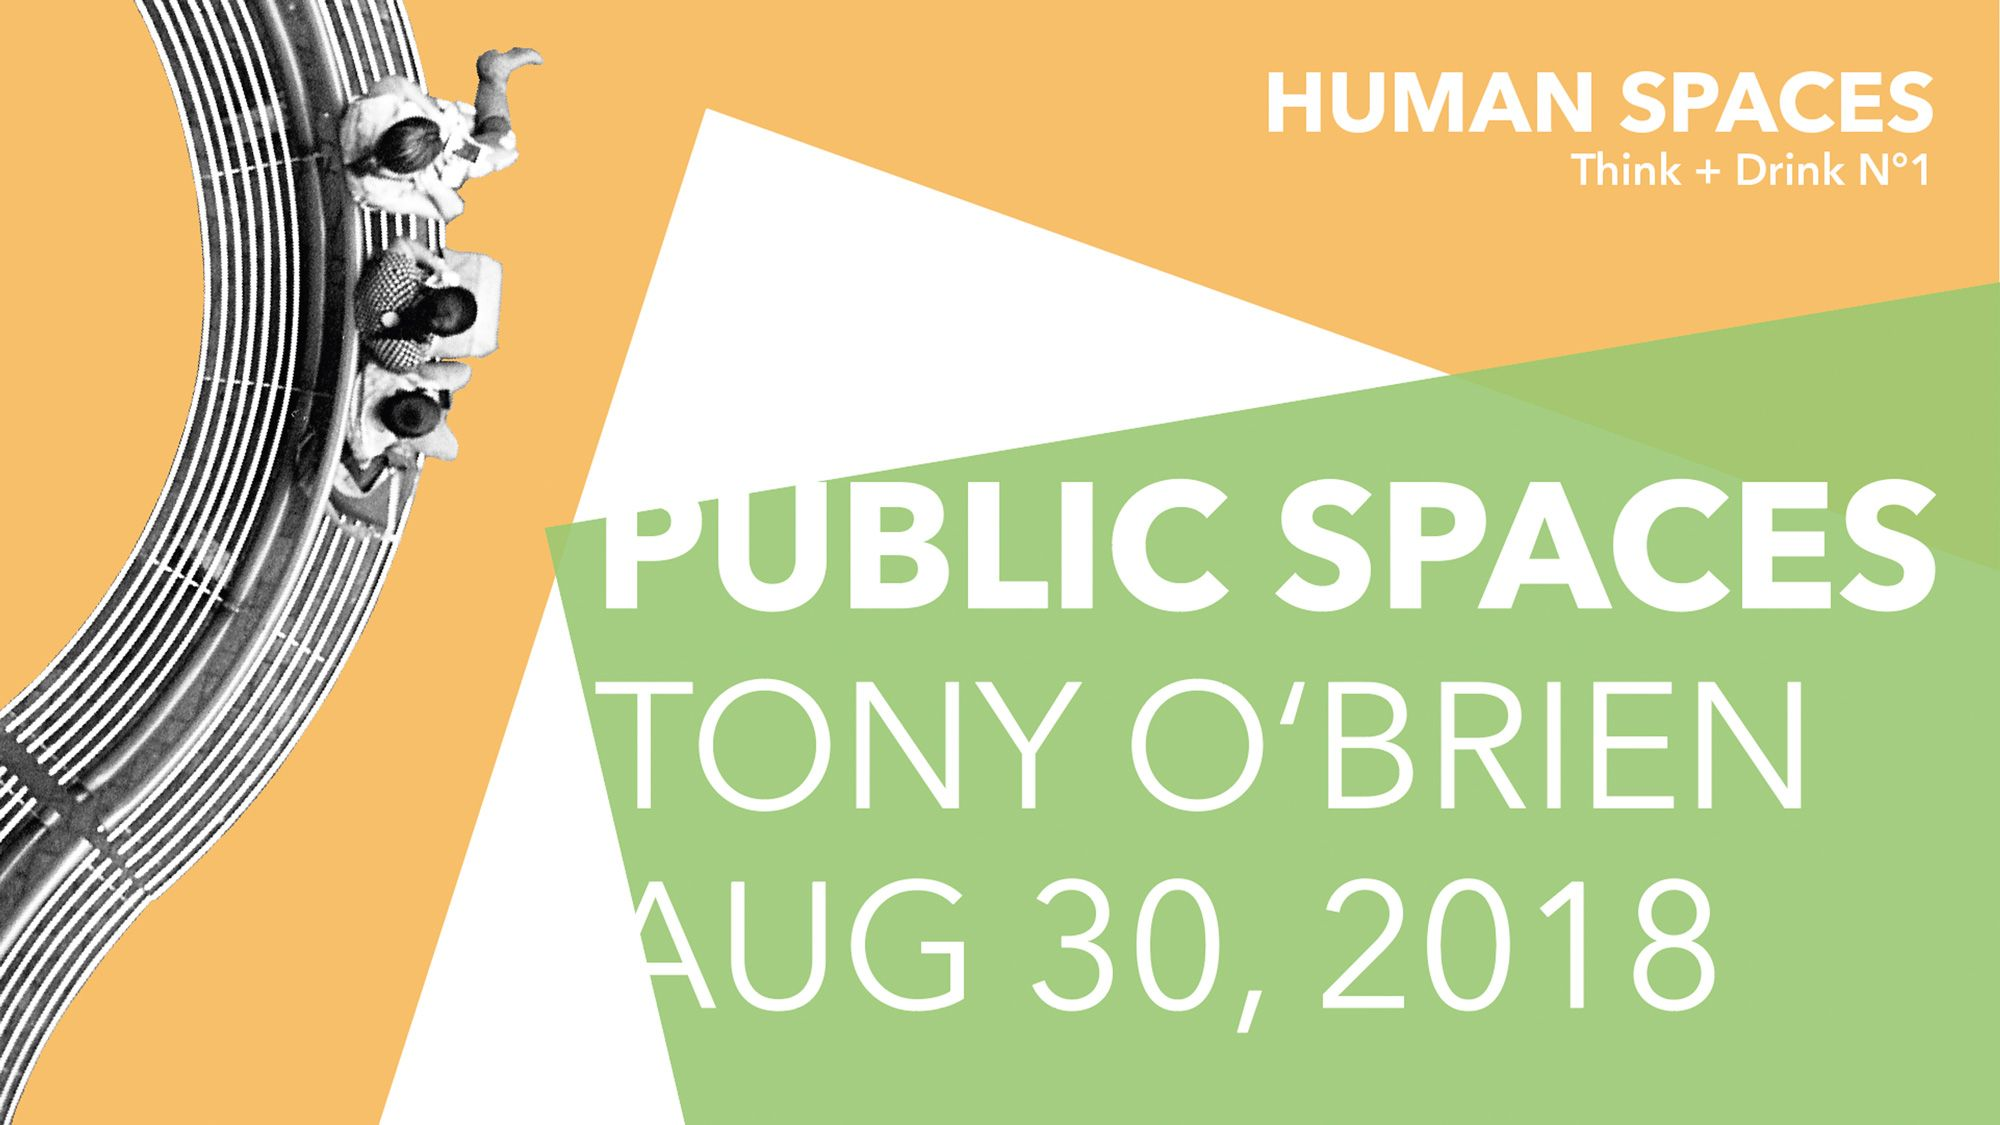 Award winning public space design - talk by Tony O'Brien